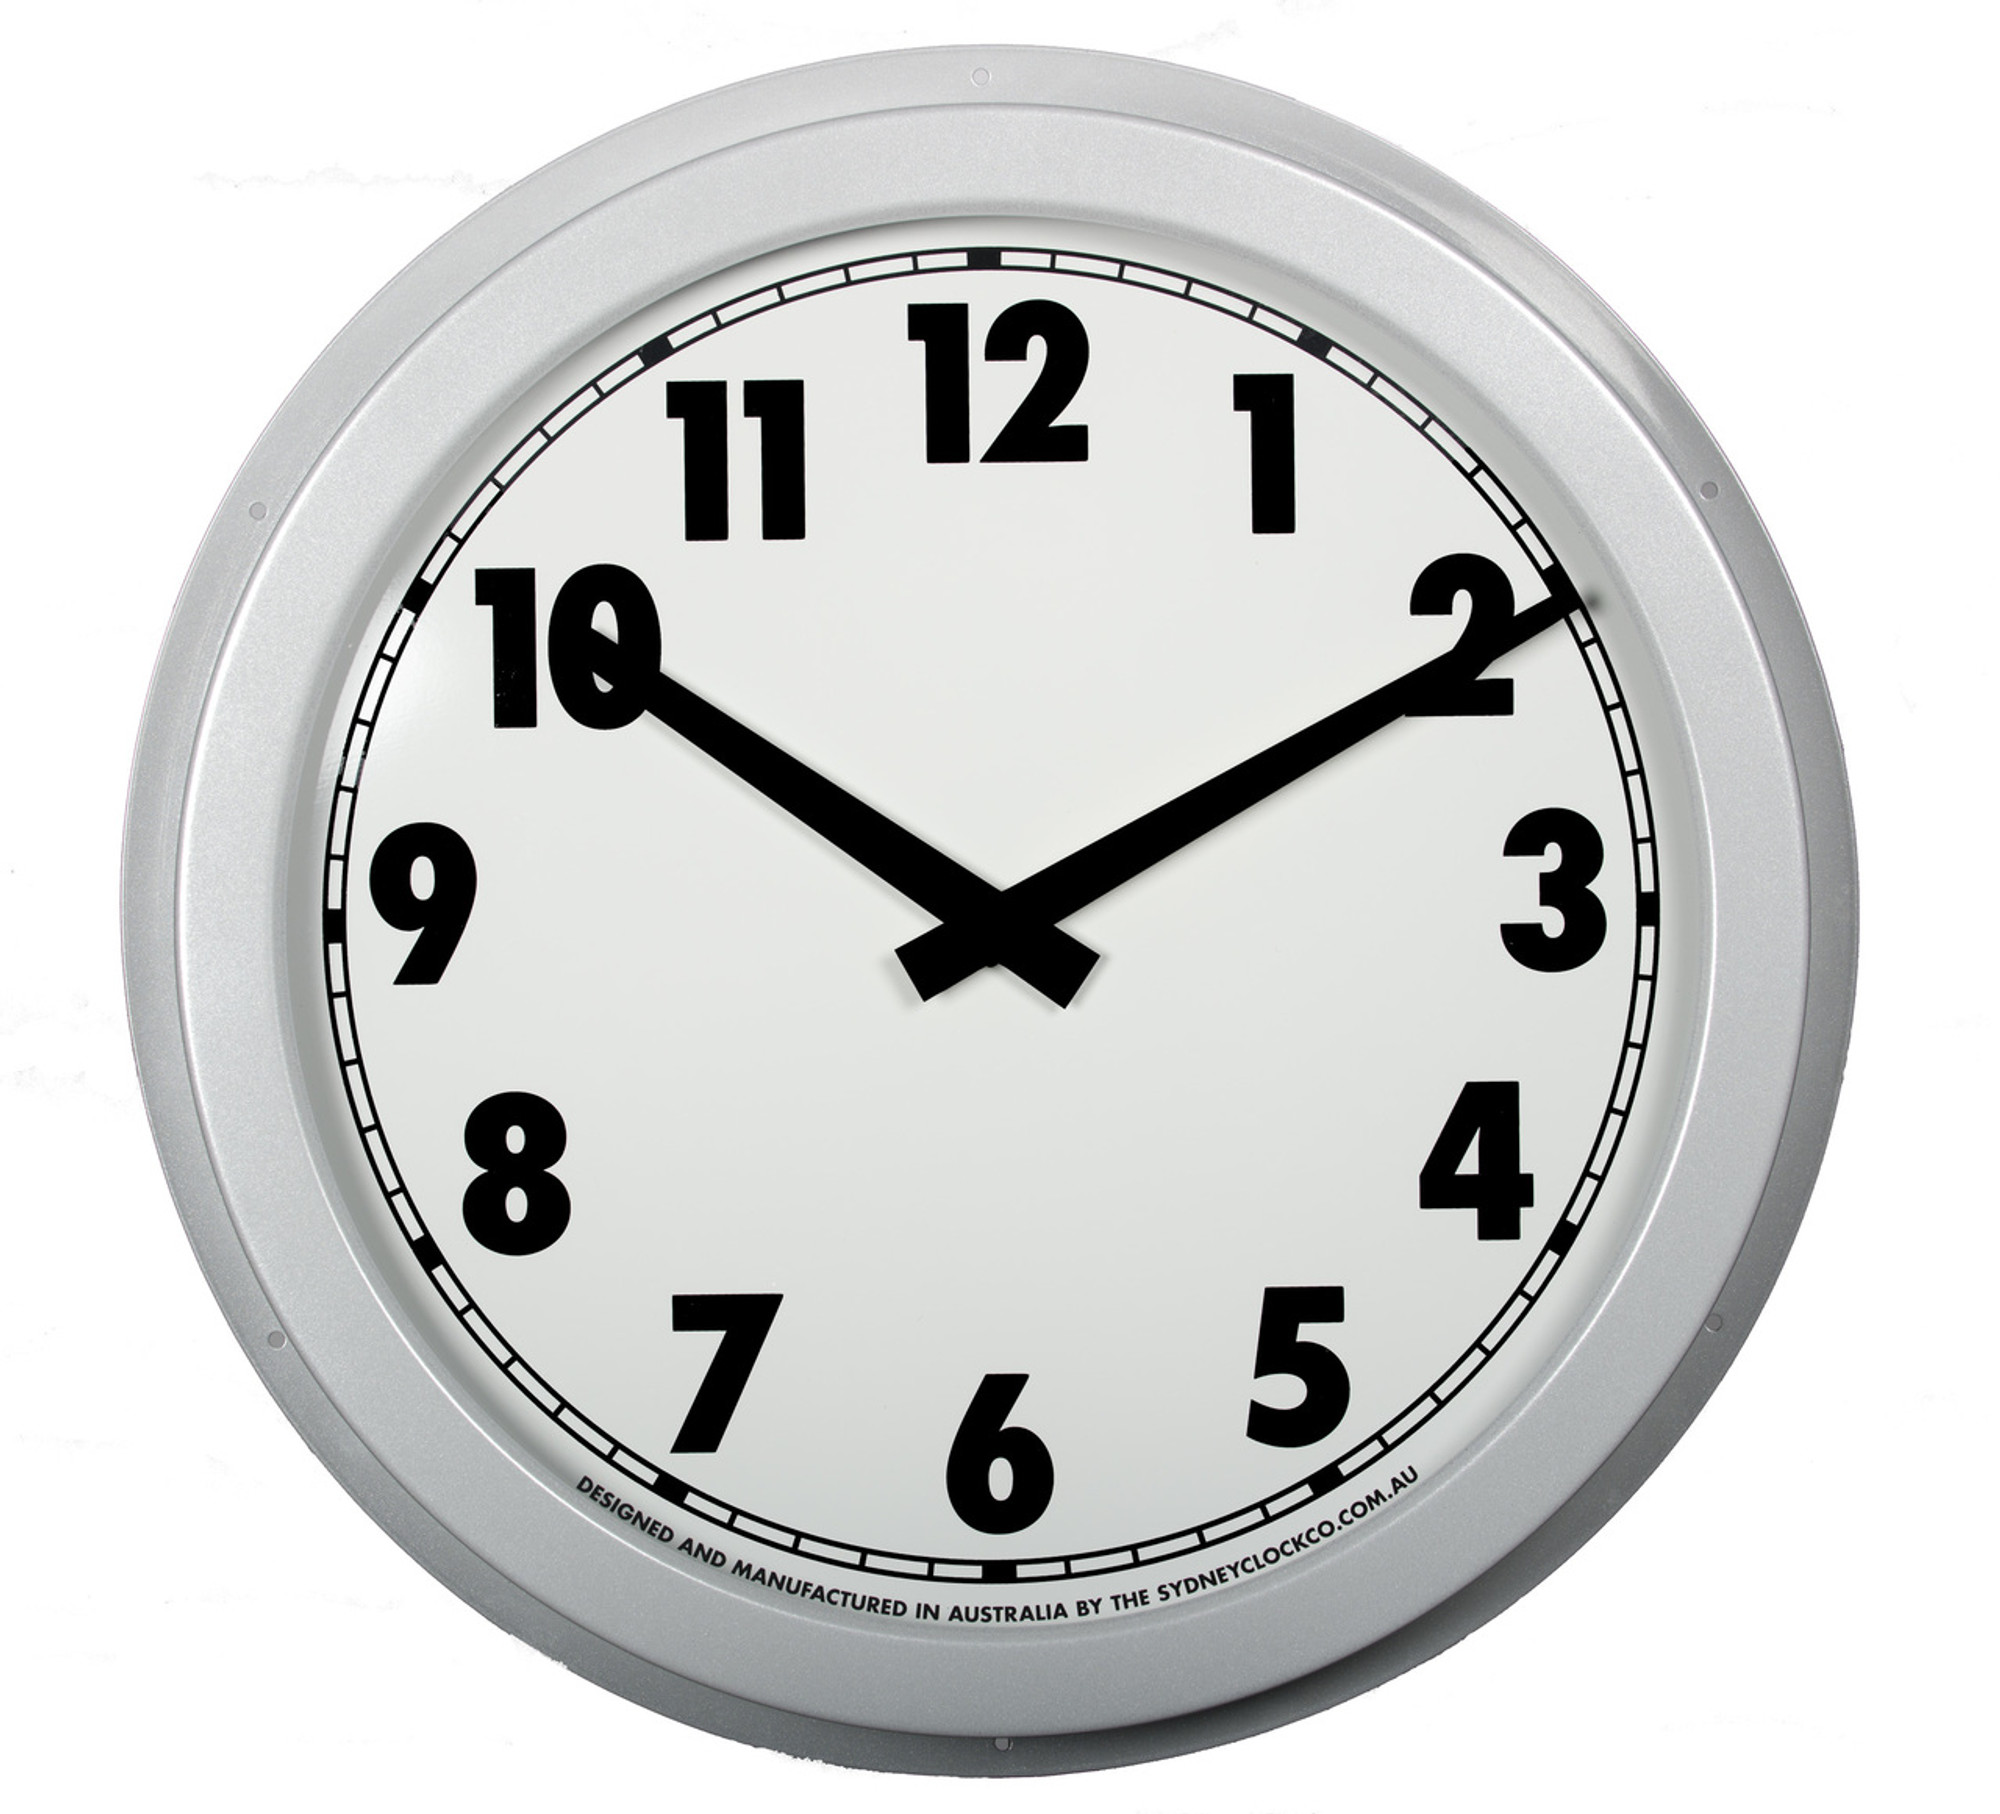 power plus world time clock instructions